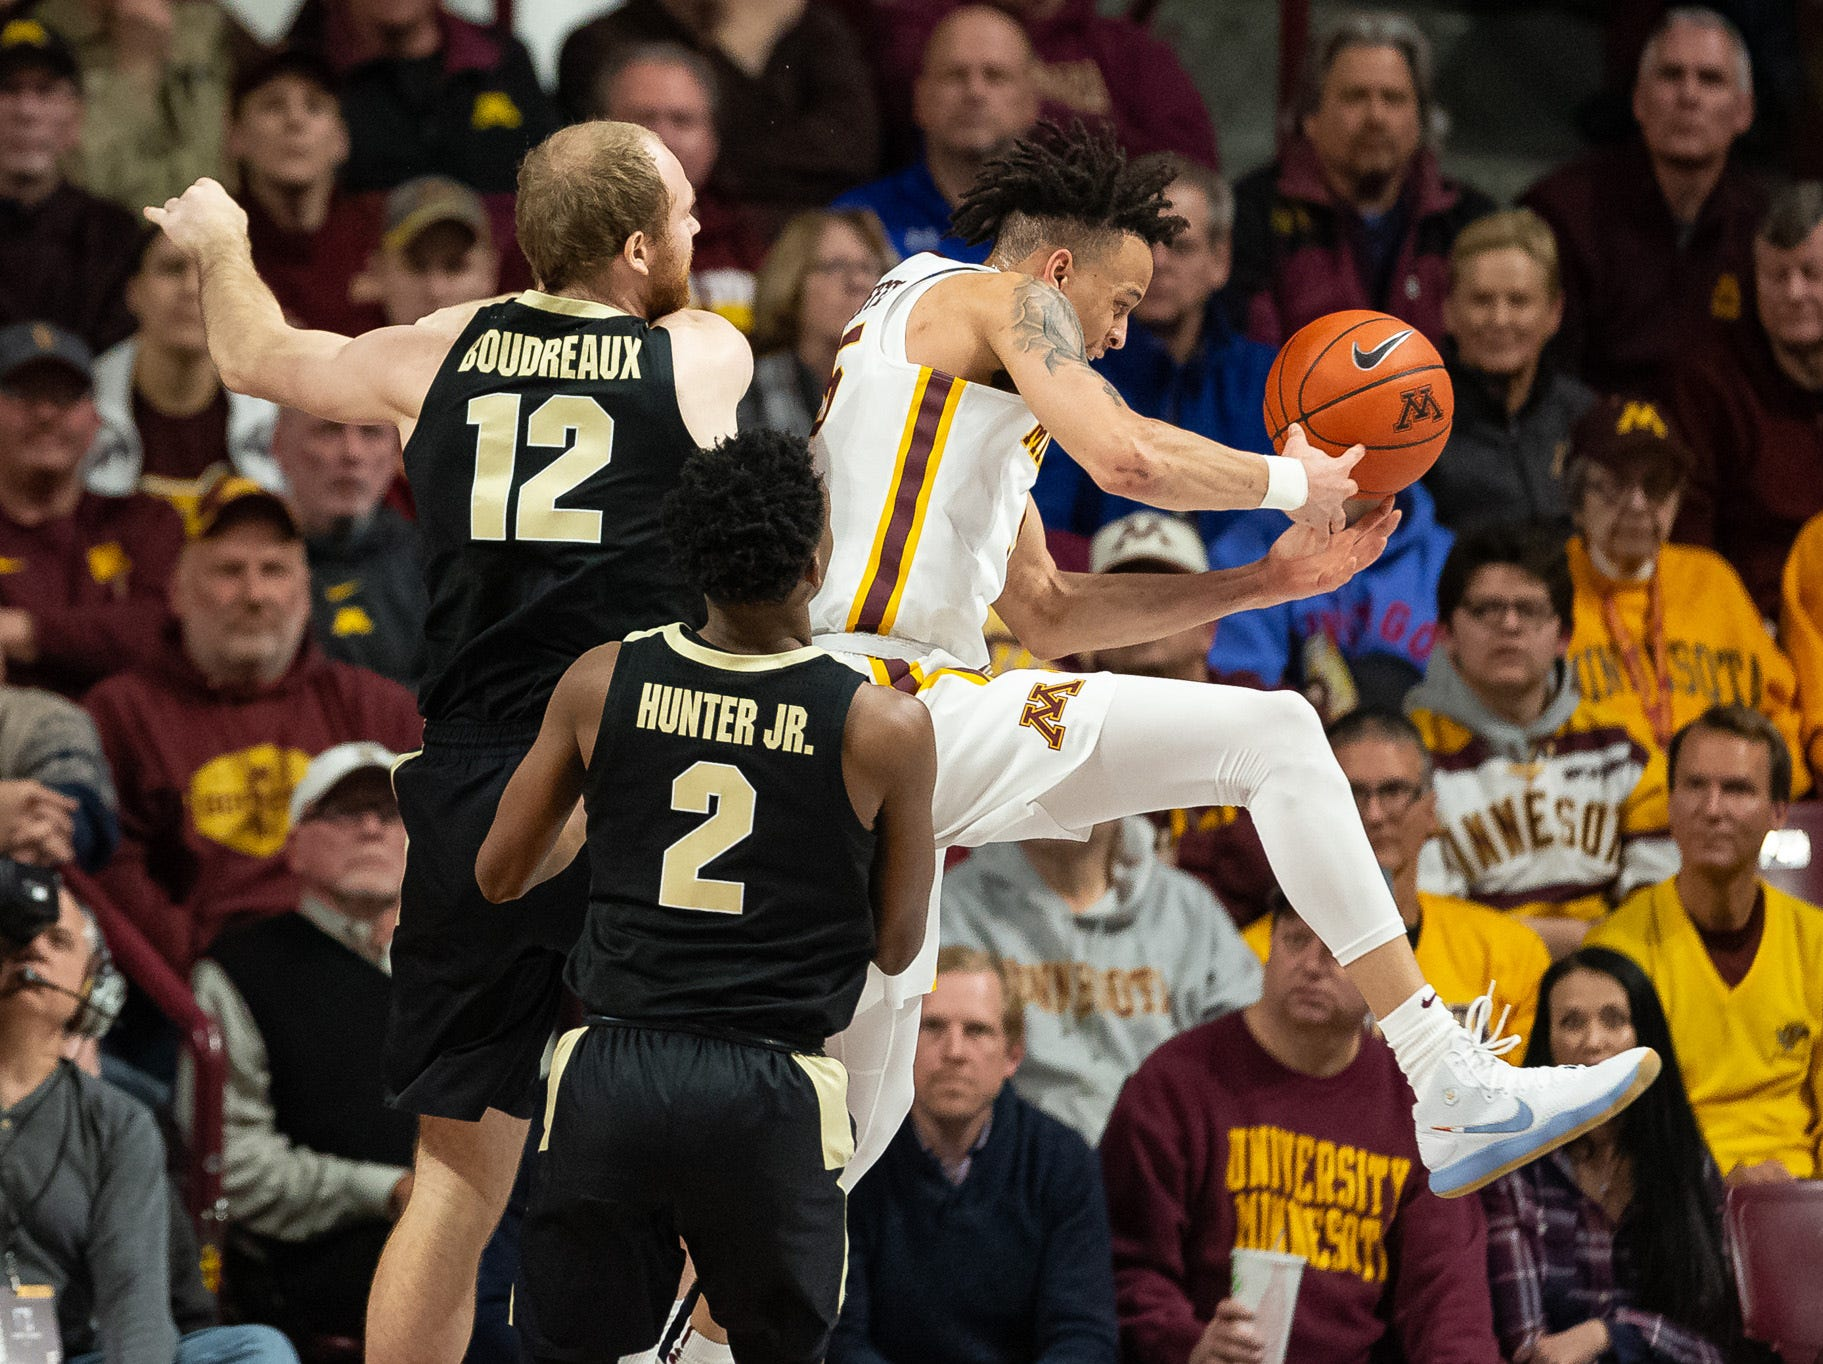 Mar 5, 2019; Minneapolis, MN, USA; Minnesota Gophers guard Amir Coffey (5) rebounds the ball as Purdue Boilermakers forward Evan Boudreaux (12) defends during the first half at Williams Arena. Mandatory Credit: Harrison Barden-USA TODAY Sports